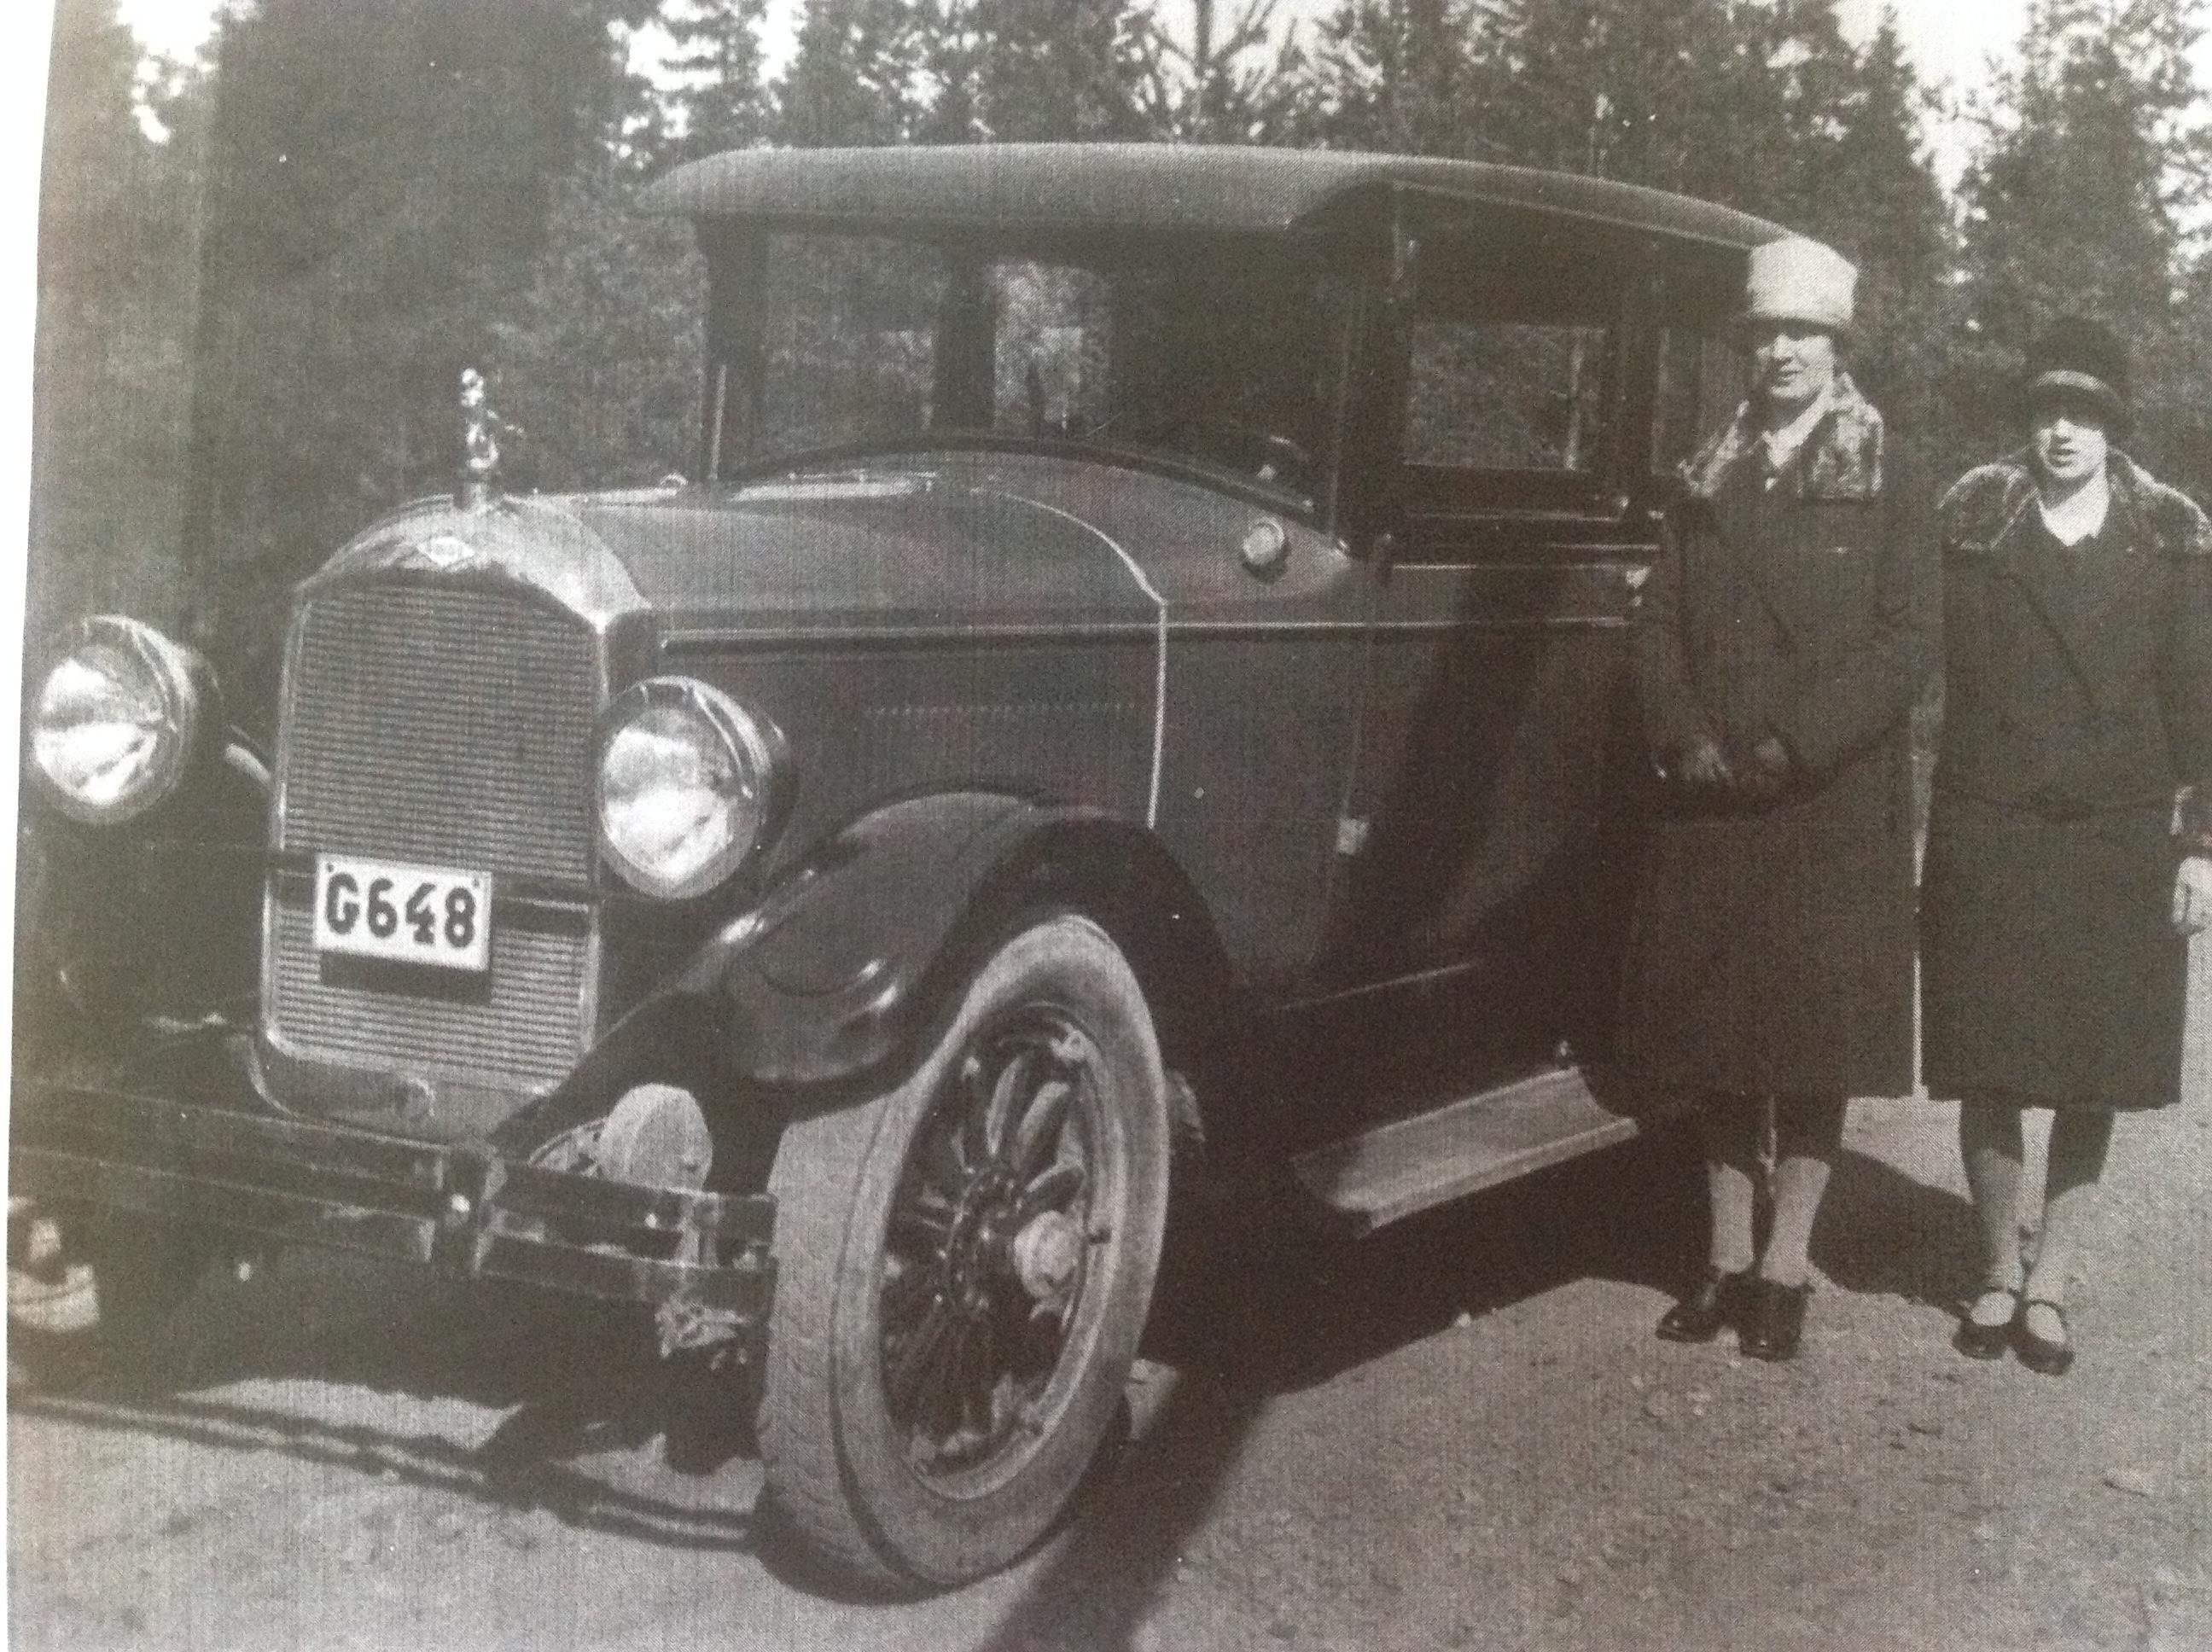 Help identify this car, photo taken in Sweden 1930s - What is it ...